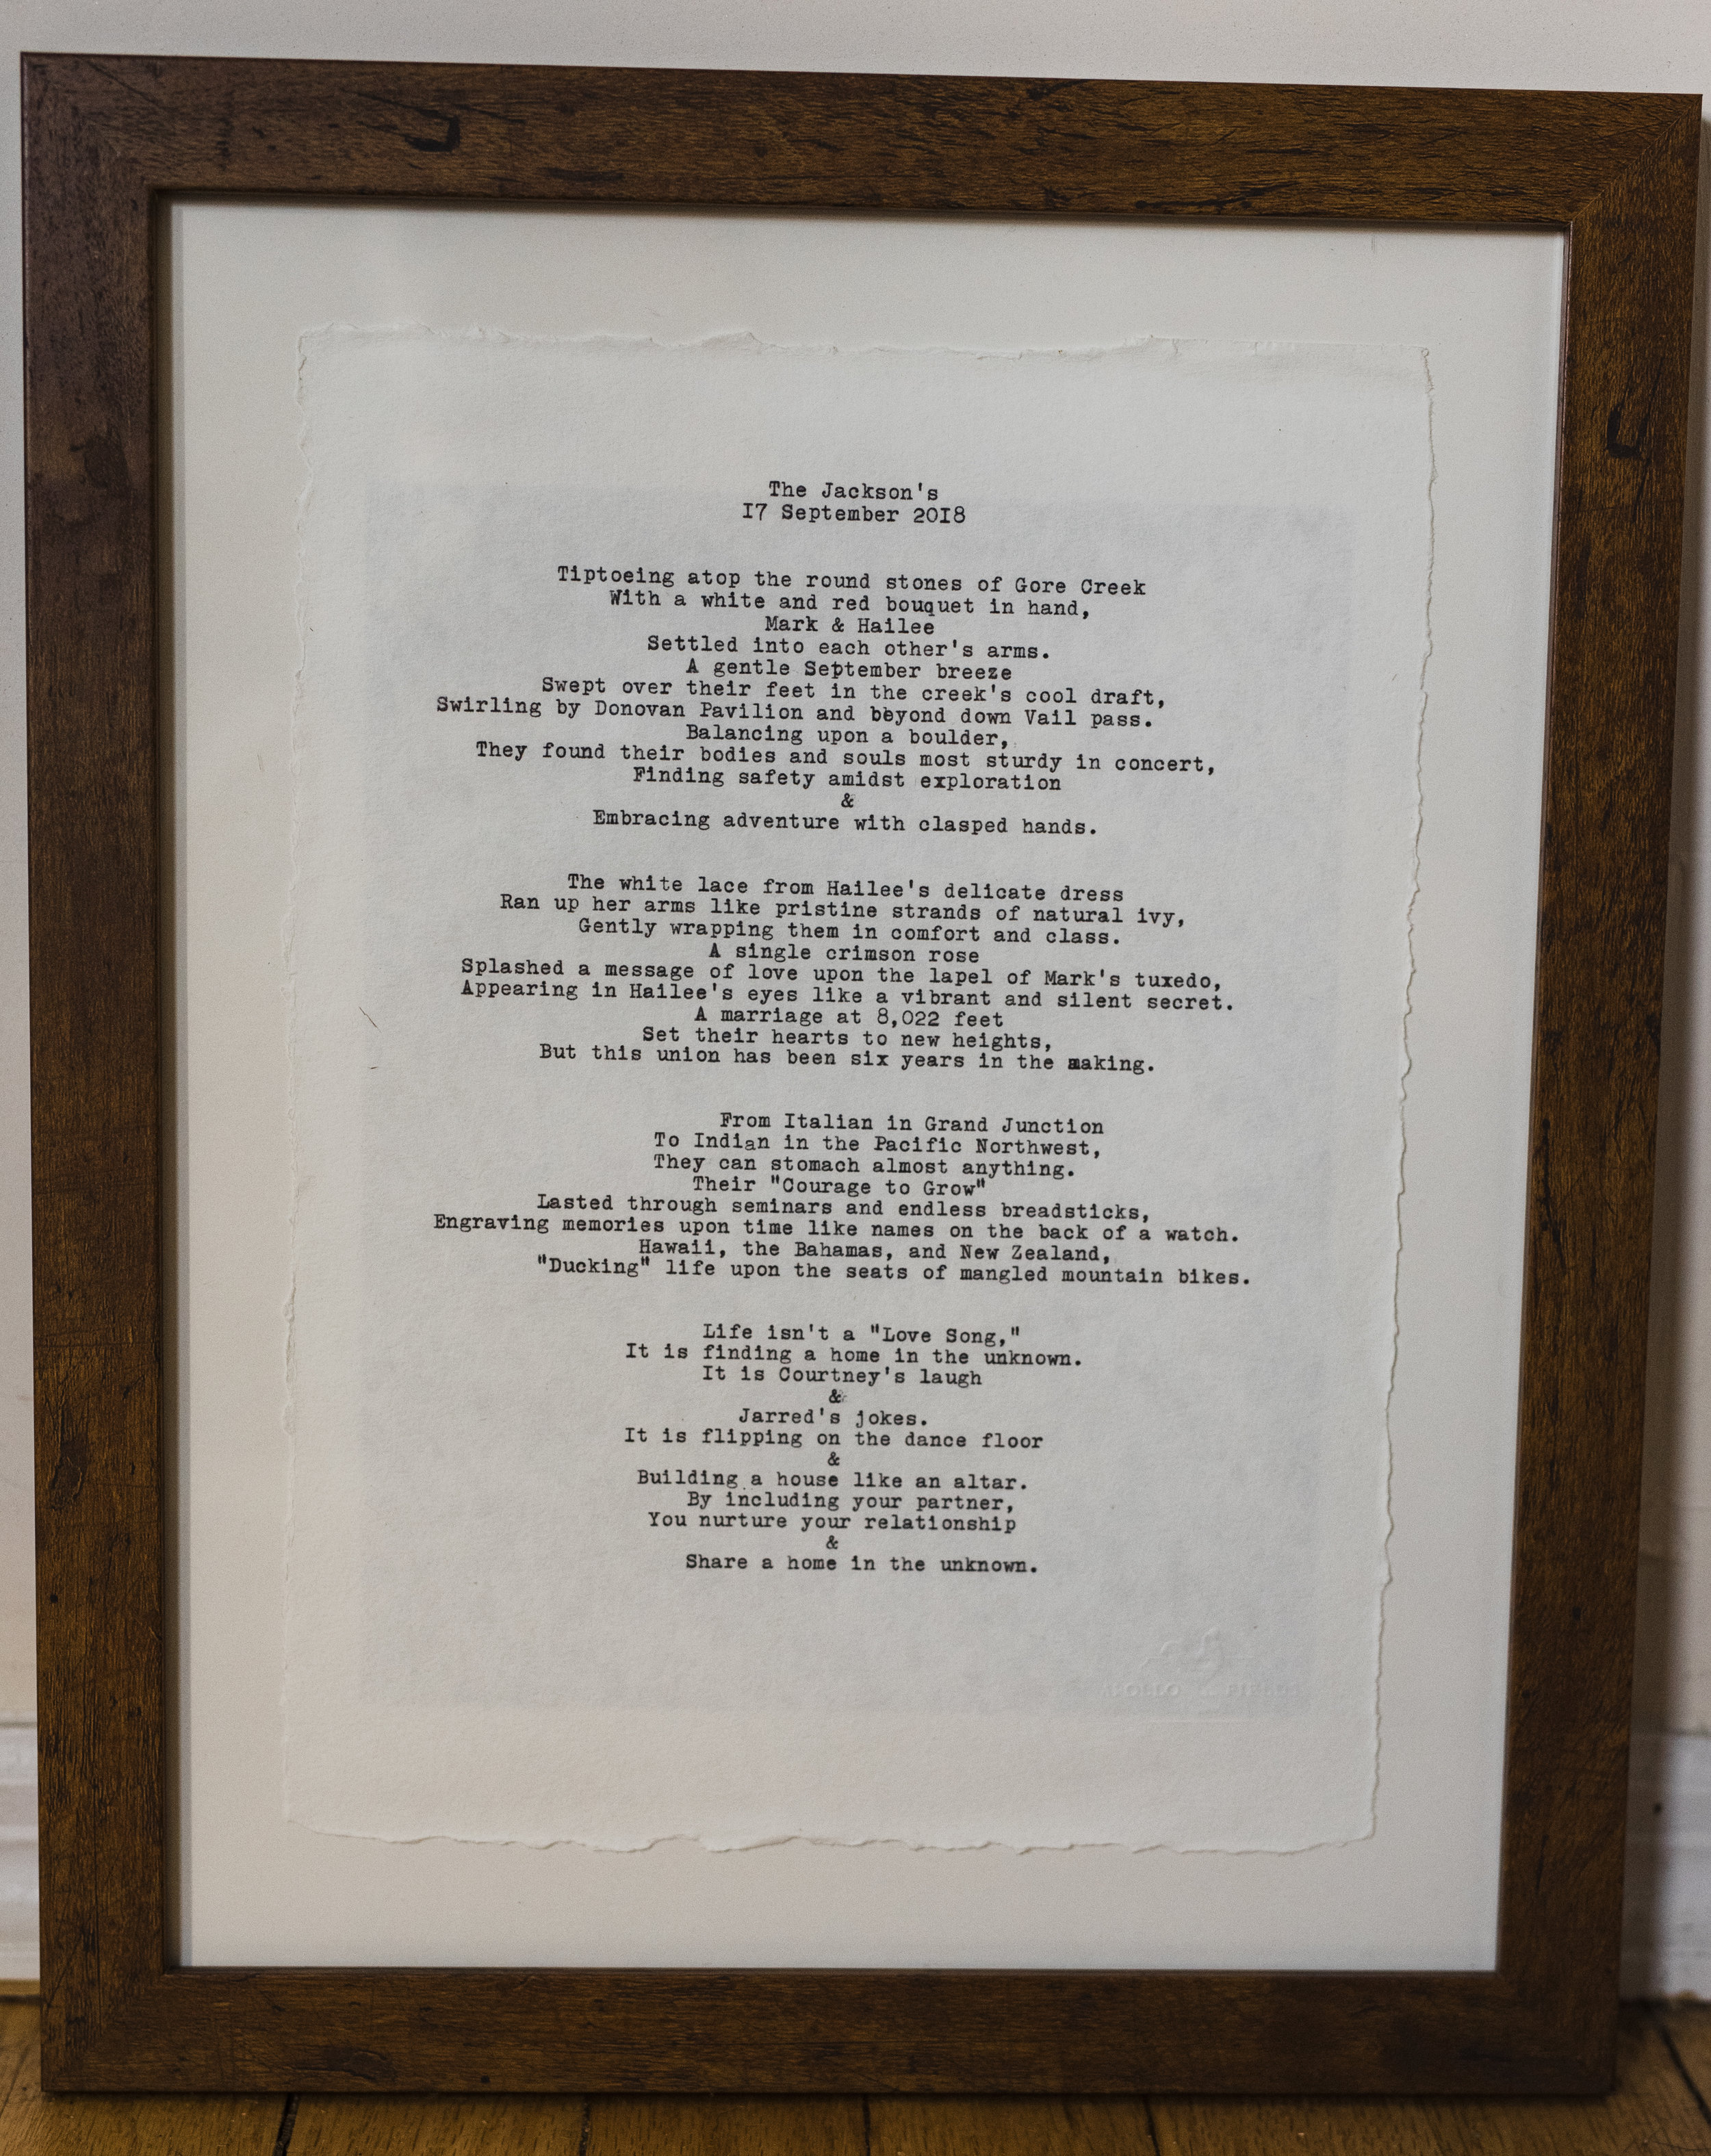 Jackson_Wedding_Poem_Custom_Typewritten_Wedding_Writer.jpg